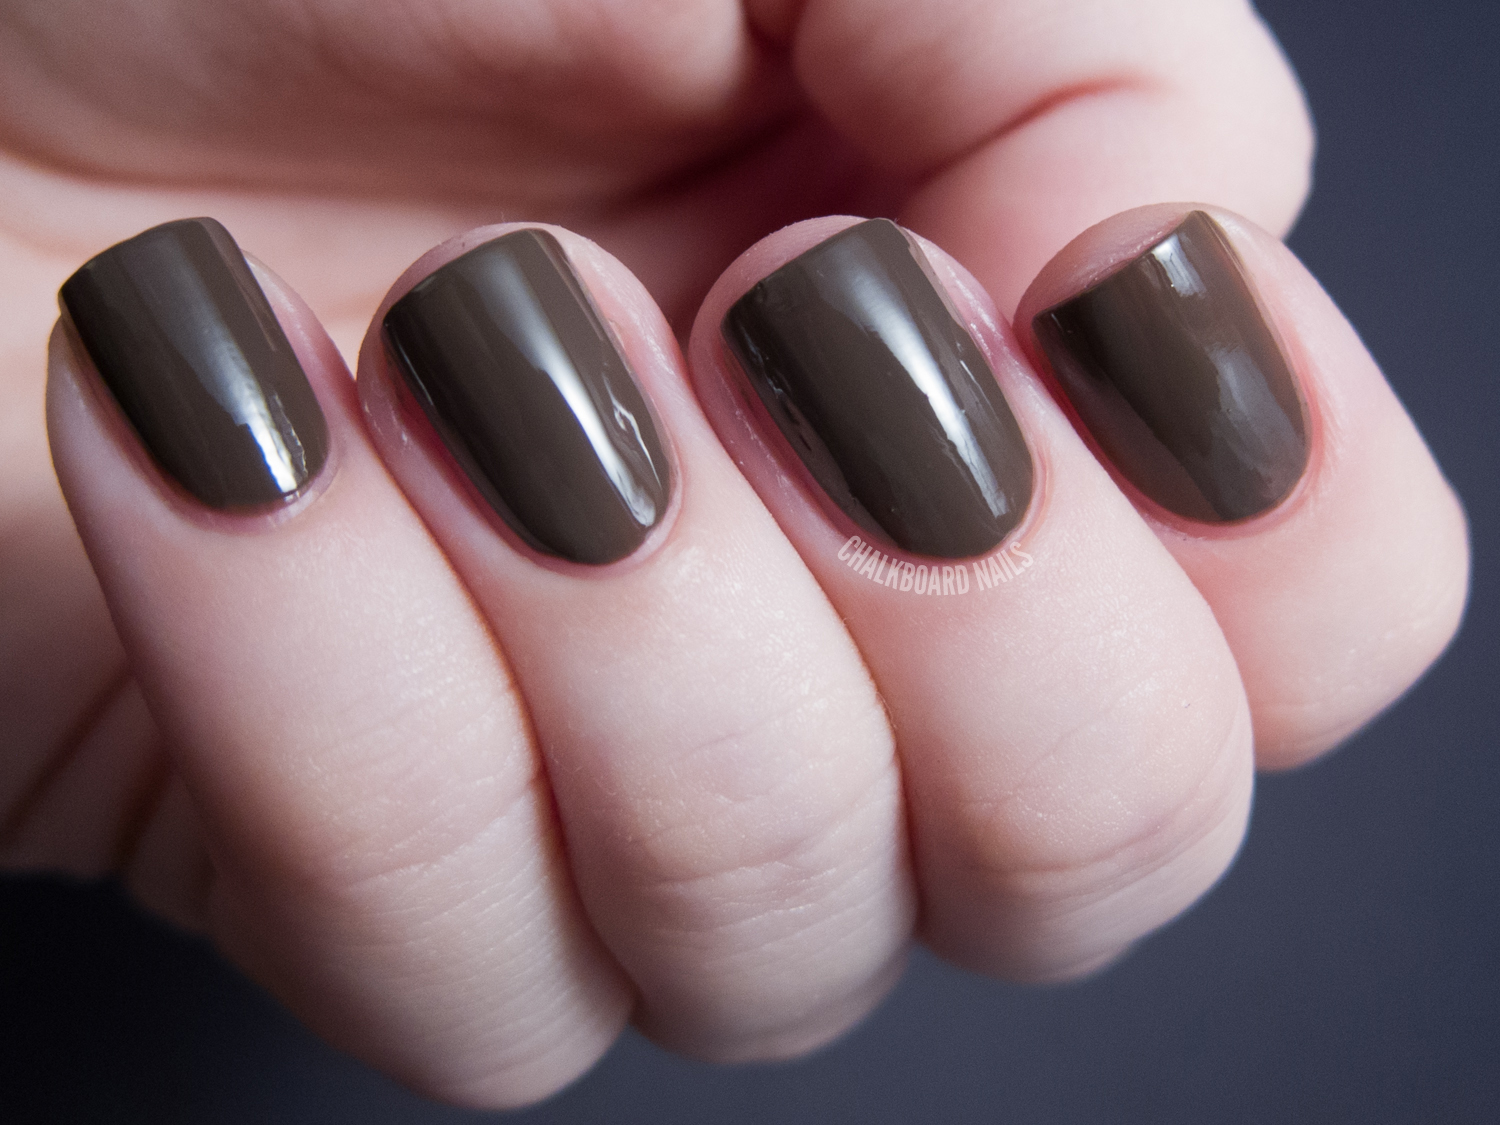 Butter london sprog and teetotal chalkboard nails nail art blog butter london teetotal prinsesfo Gallery